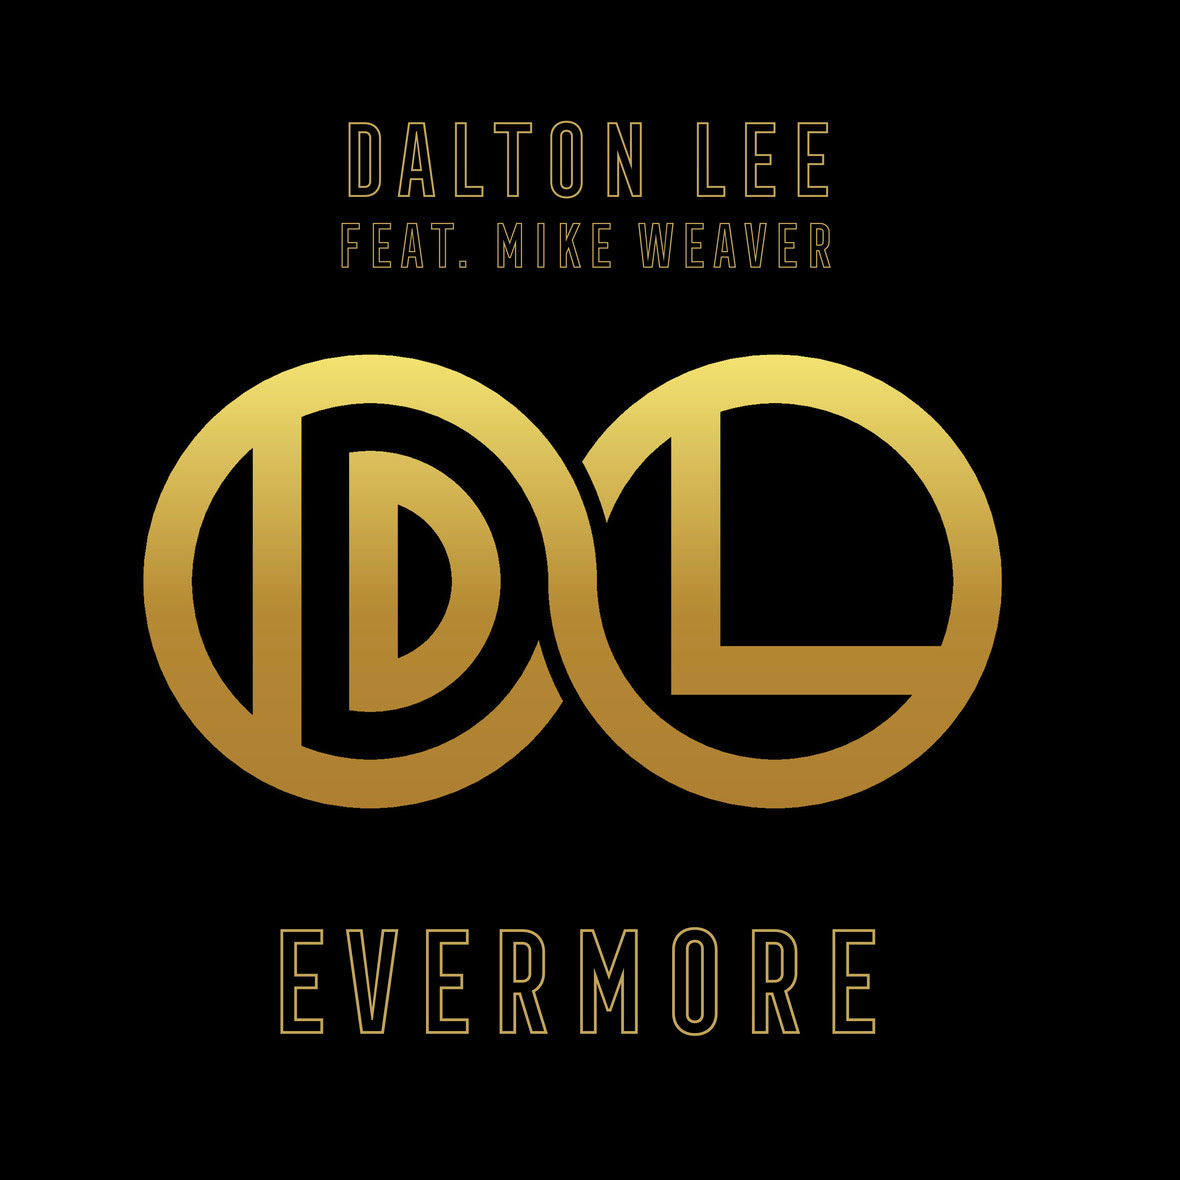 Dalton Lee - Evermore feat. Mike Weaver